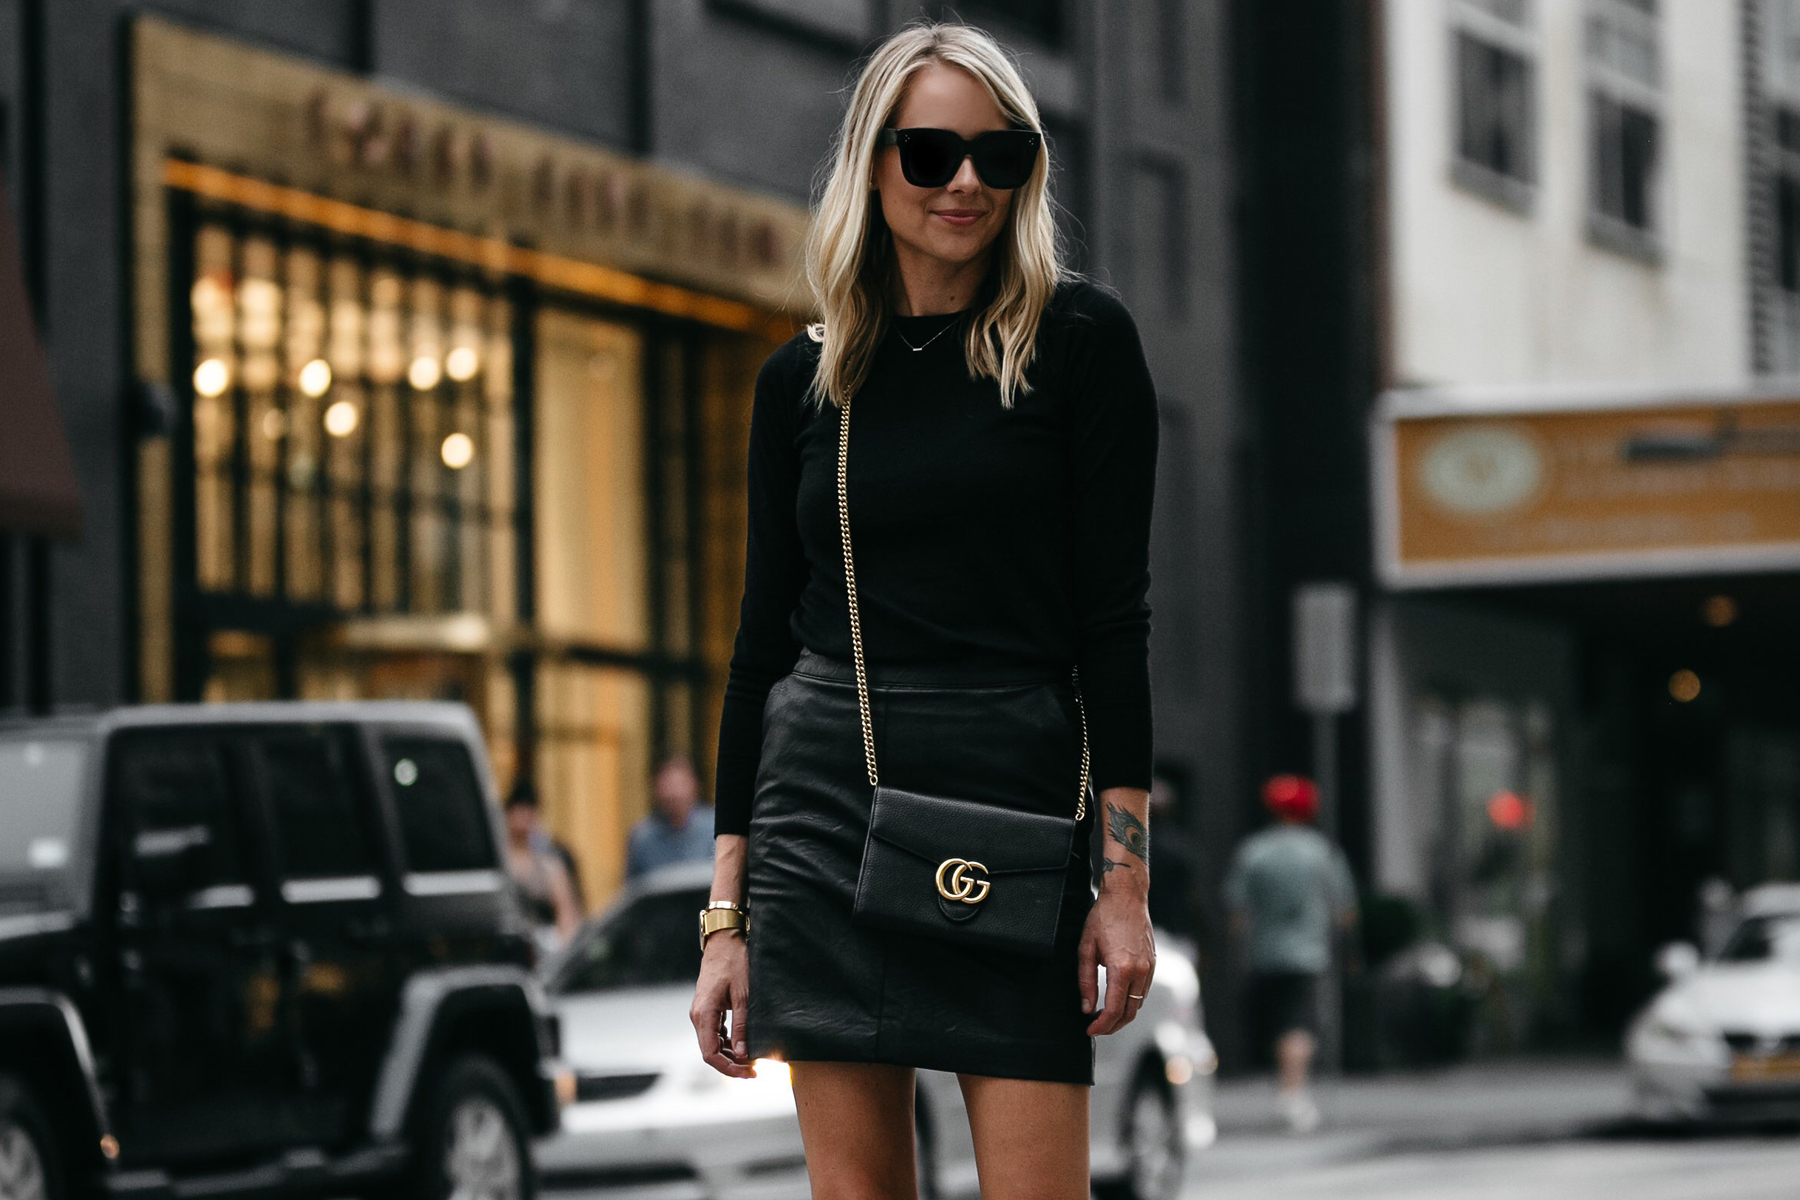 Blonde Woman Wearing Club Monaco Black Sweater Topshop Black Leather Mini Skirt Outfit Gucci Marmont Handbag Fashion Jackson Dallas Blogger Fashion Blogger Street Style